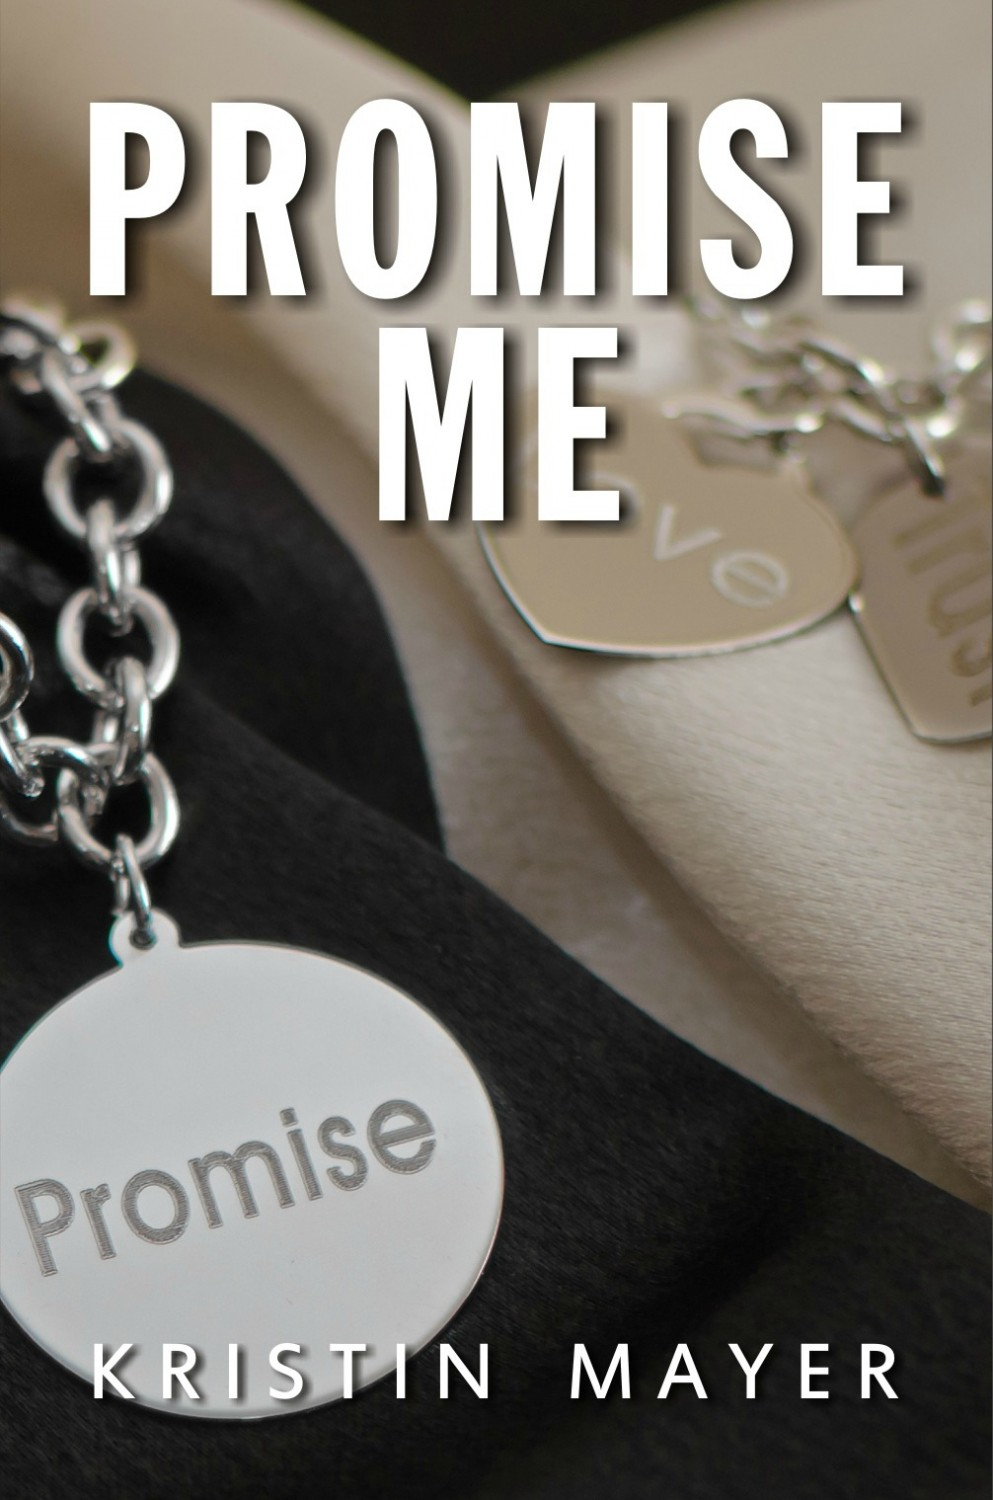 promise-me-book-cover_front_fnl-e1398582113523